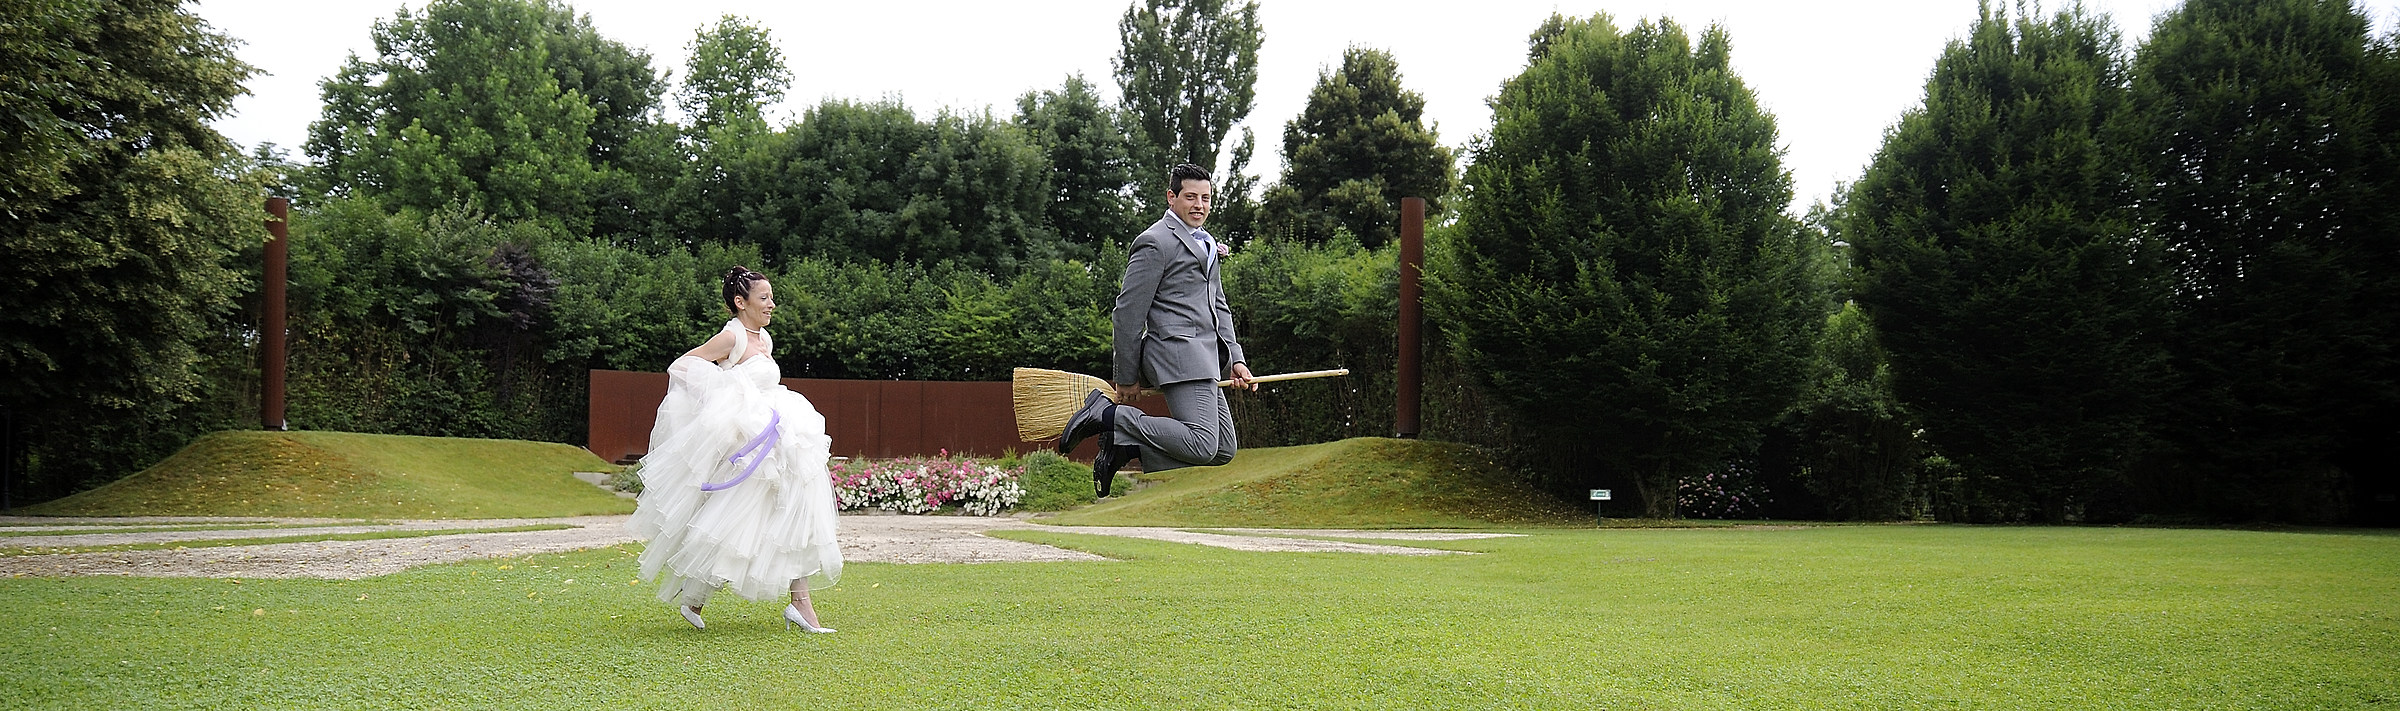 photoshop? no thanks ... the groom is athletic....